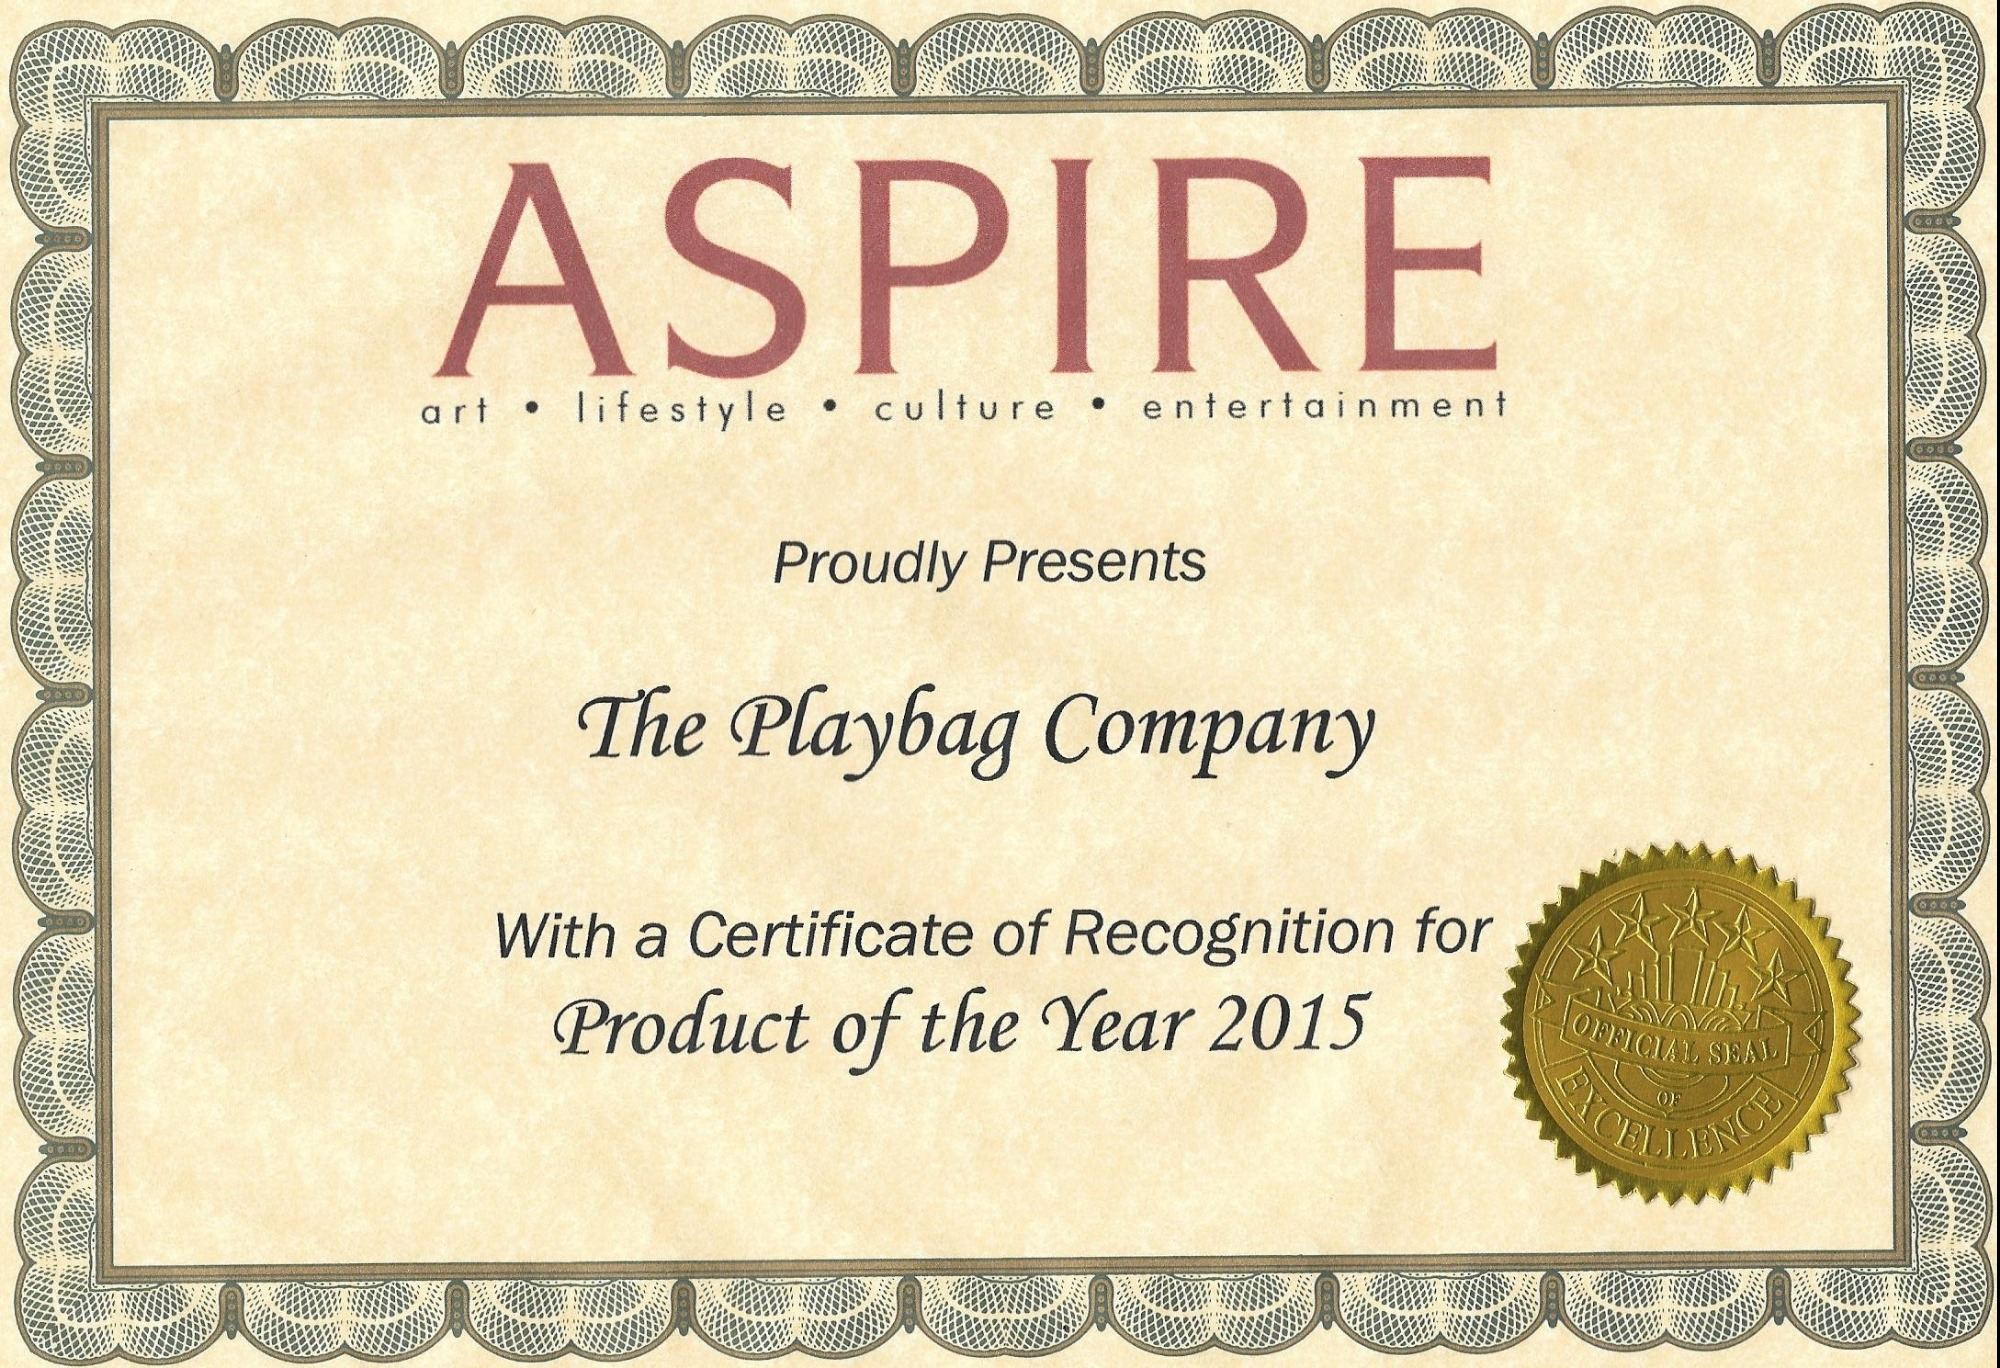 PlayBag awarded Product of the Year 2015